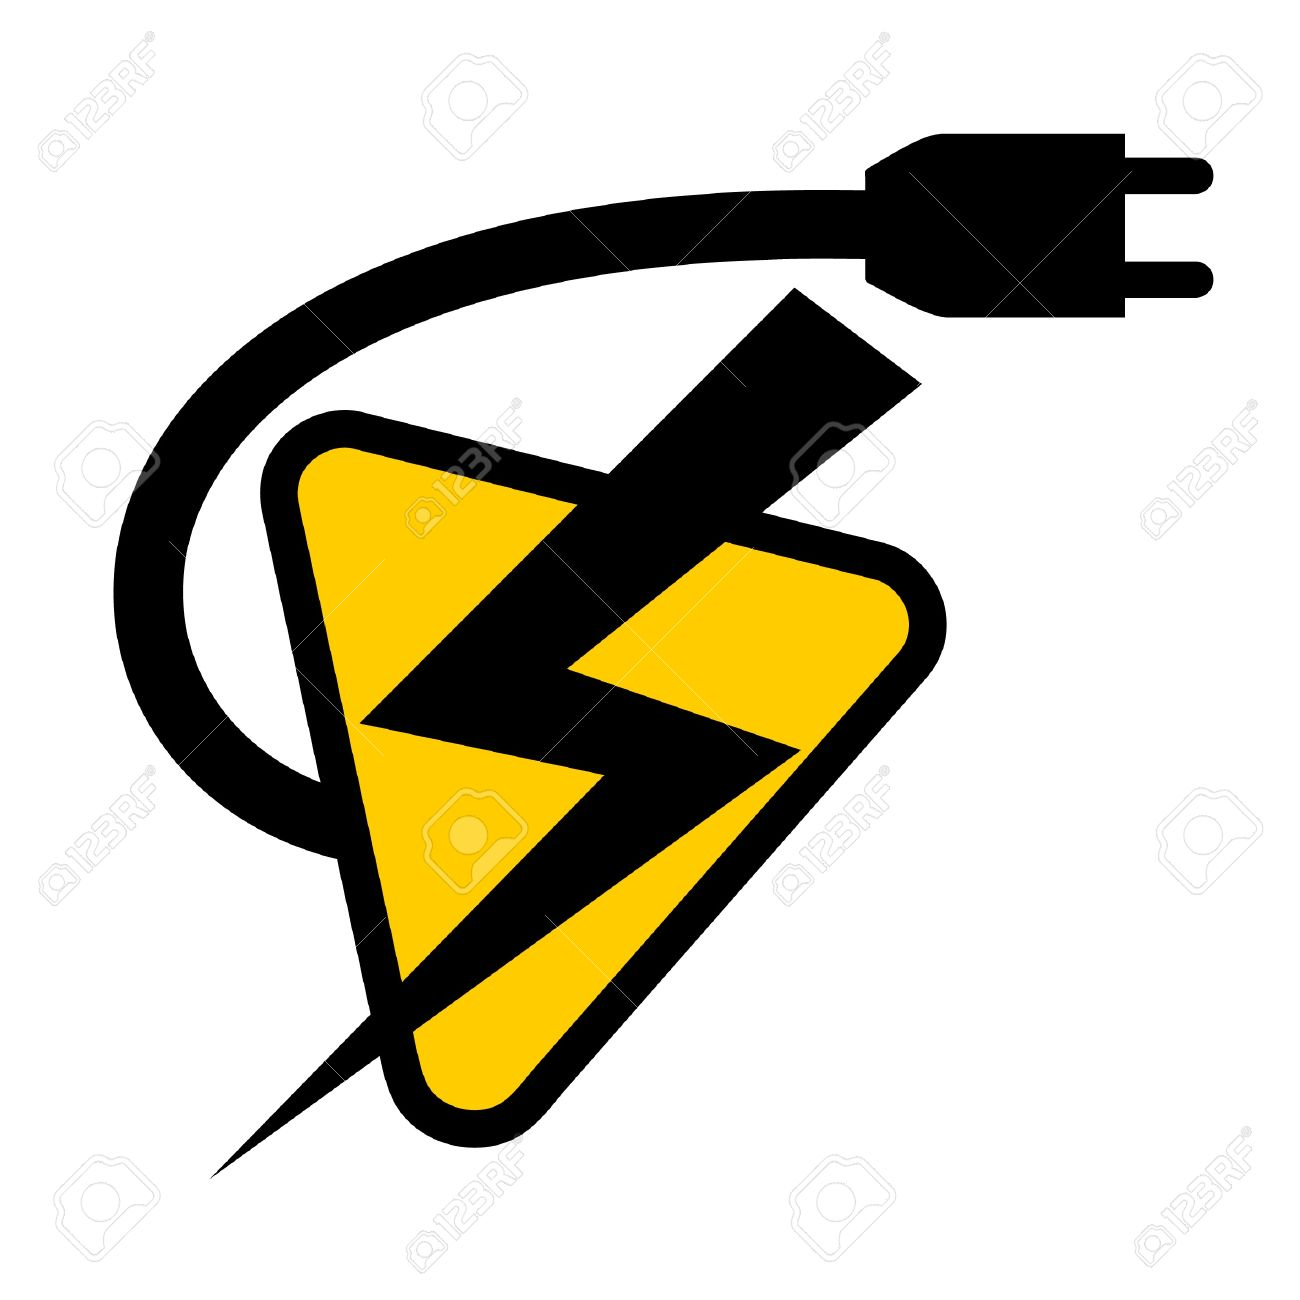 image royalty free download Free download best . Electricity clipart